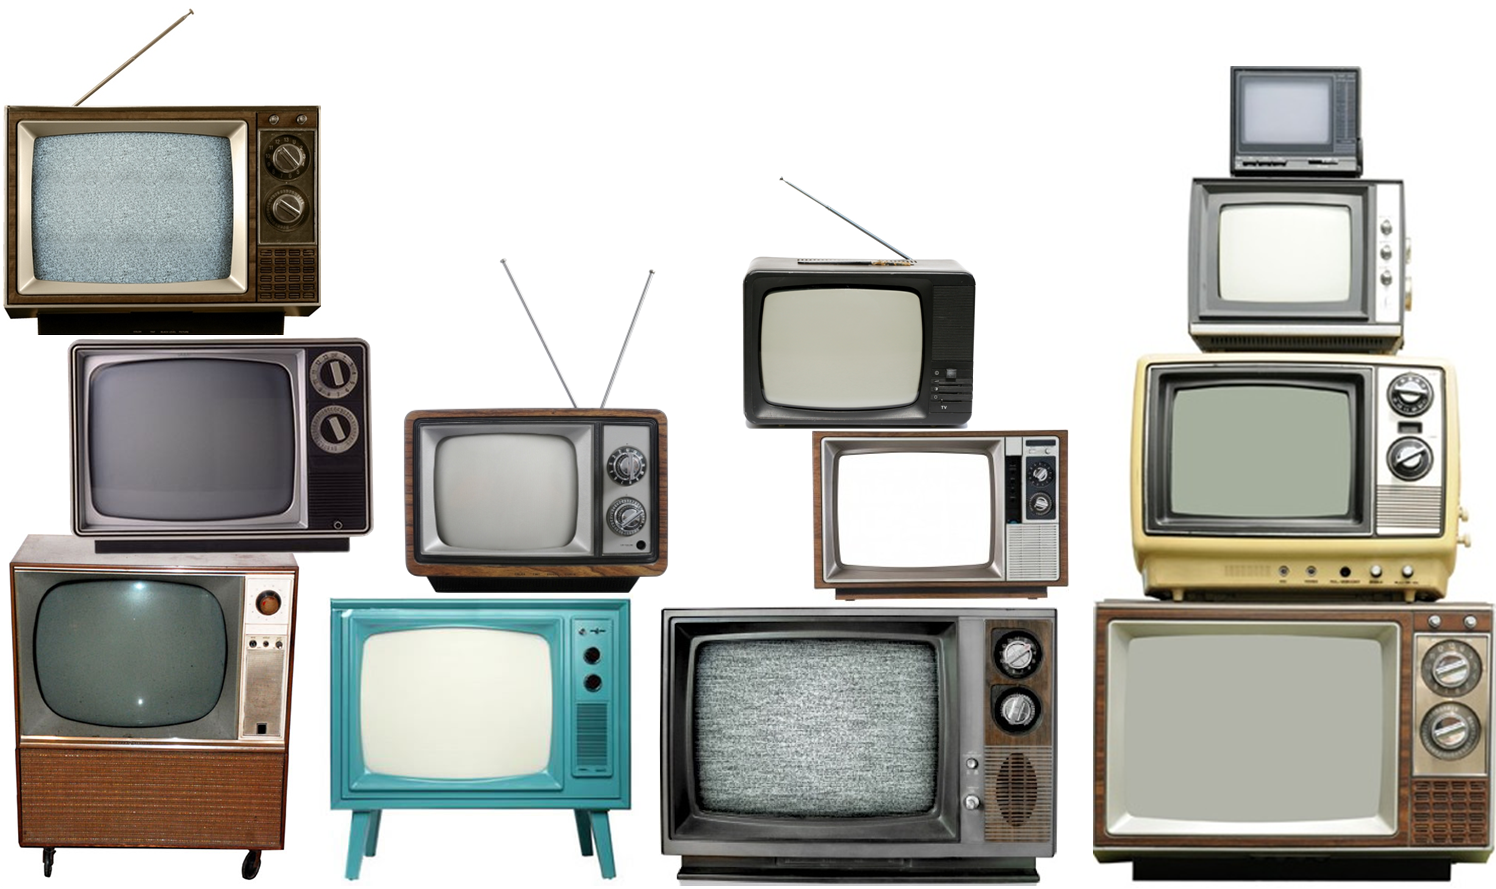 Image Result For Stack Of Old Televisions Old Tv Editorial Design Layout Family Room Furniture